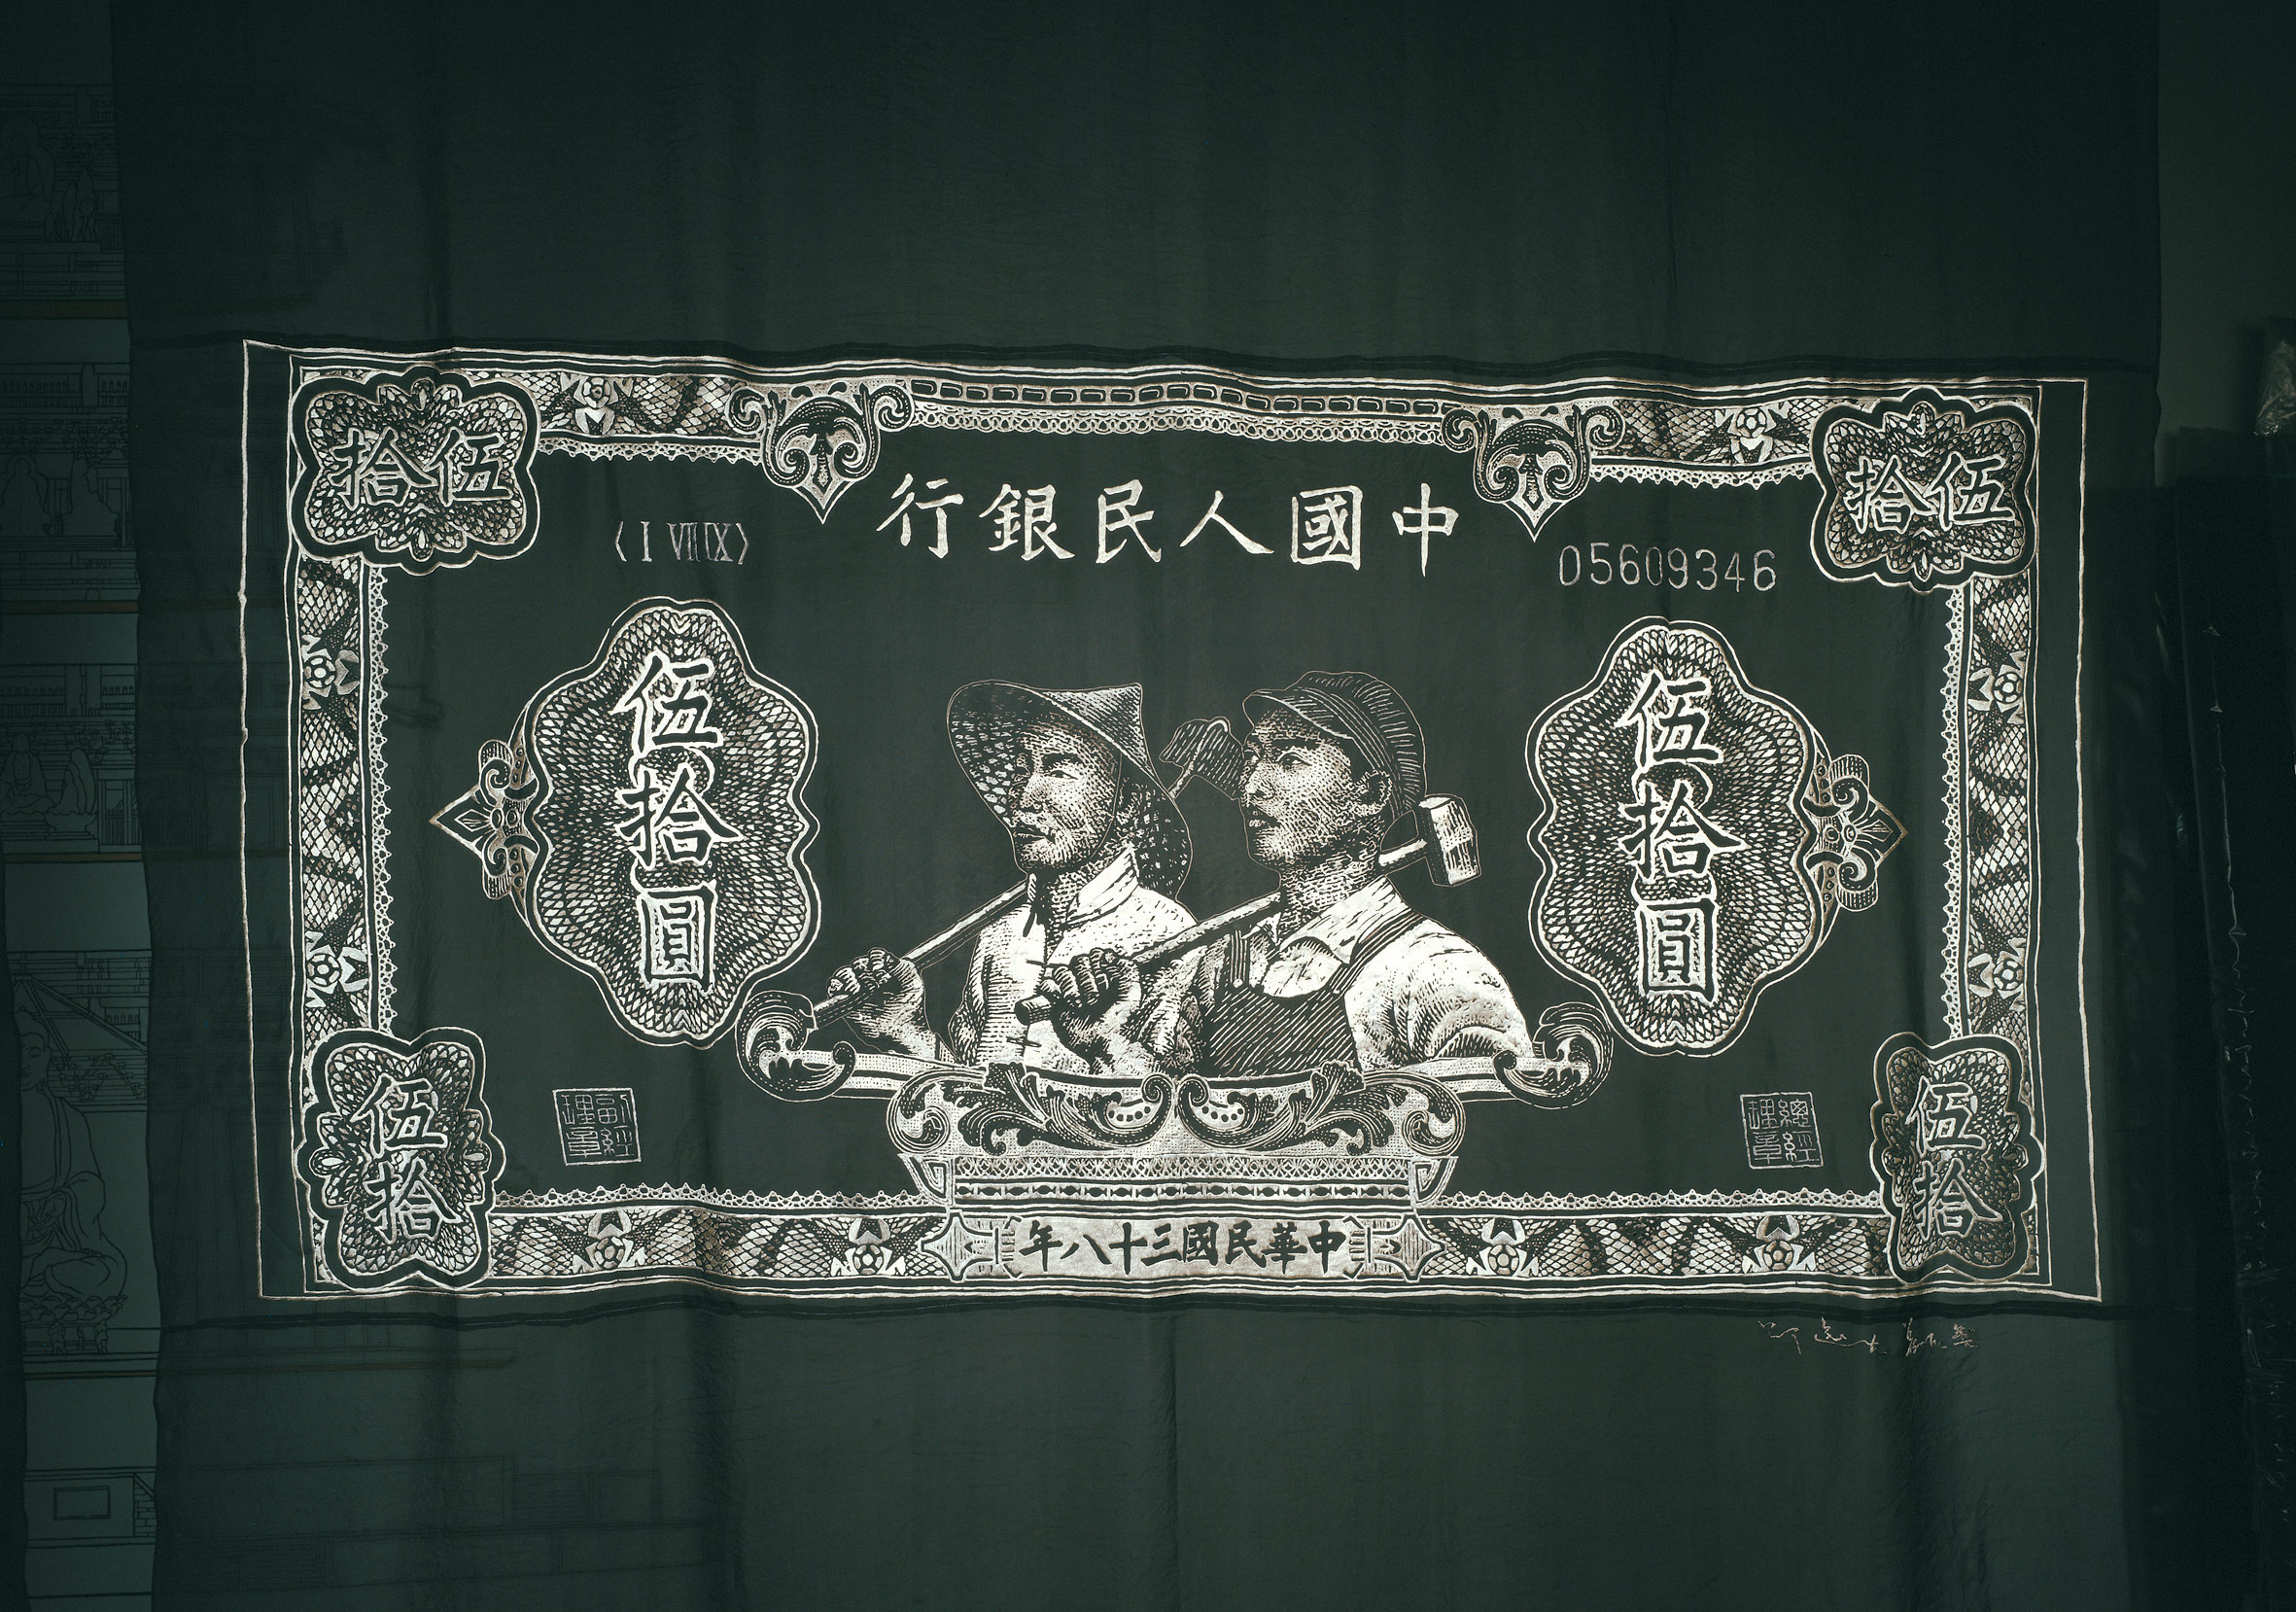 Shao Yinong & Mu Chen,Spring & Autumn - 1949 50 Chinese Note (Workers and peasants)2004-2014Embroidery on Silk286 x 388 cm